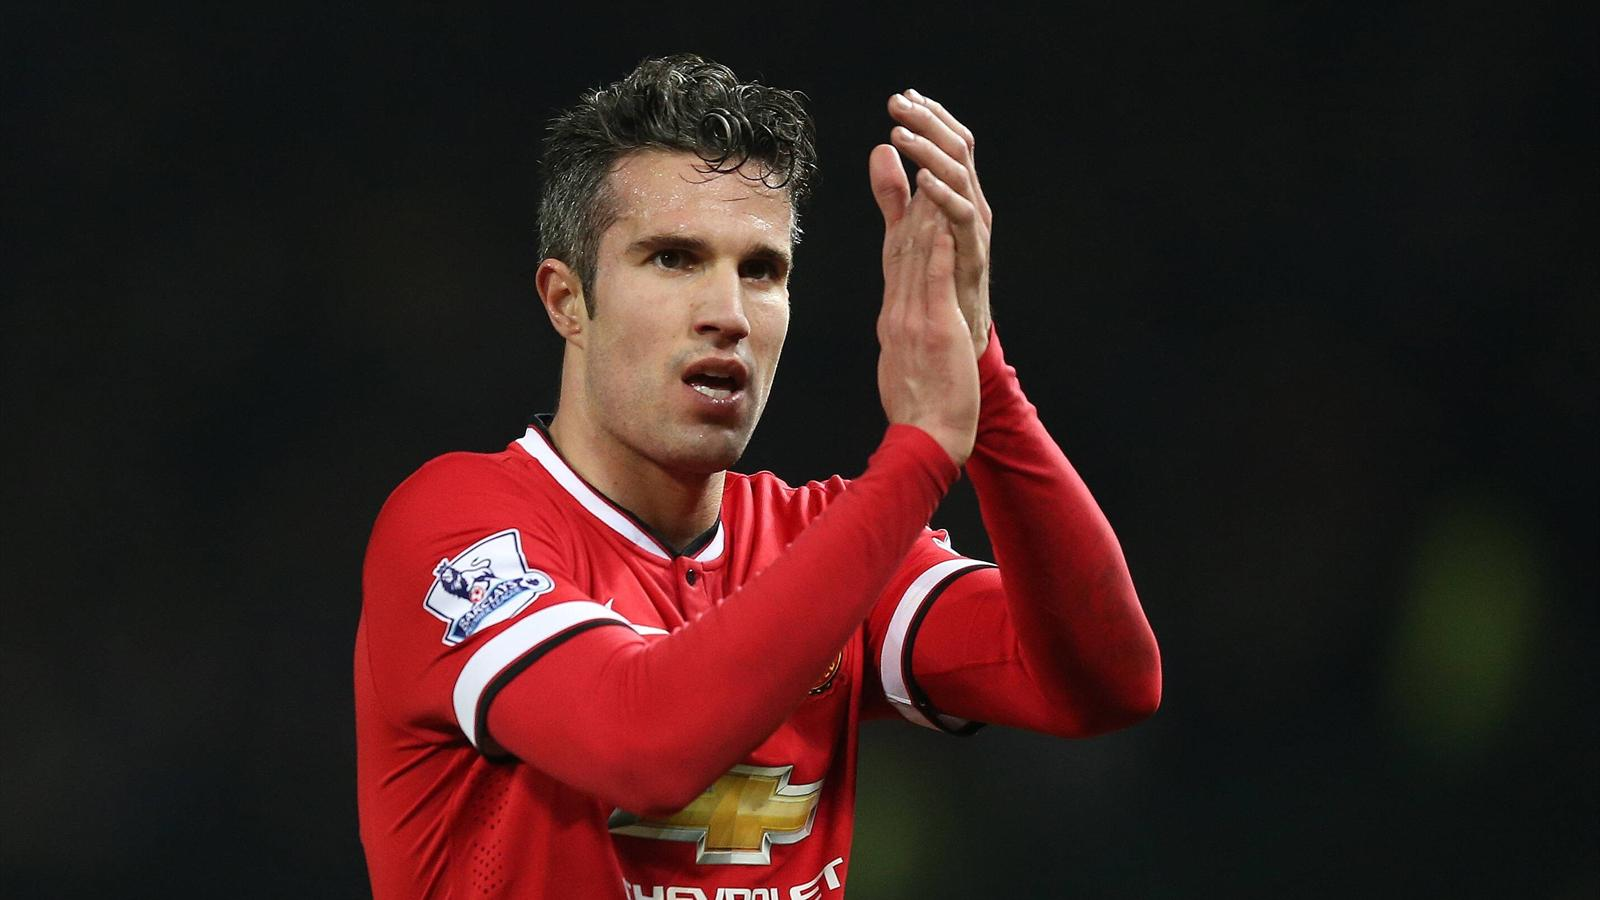 Robin van Persie is set to move to Fenerbahce